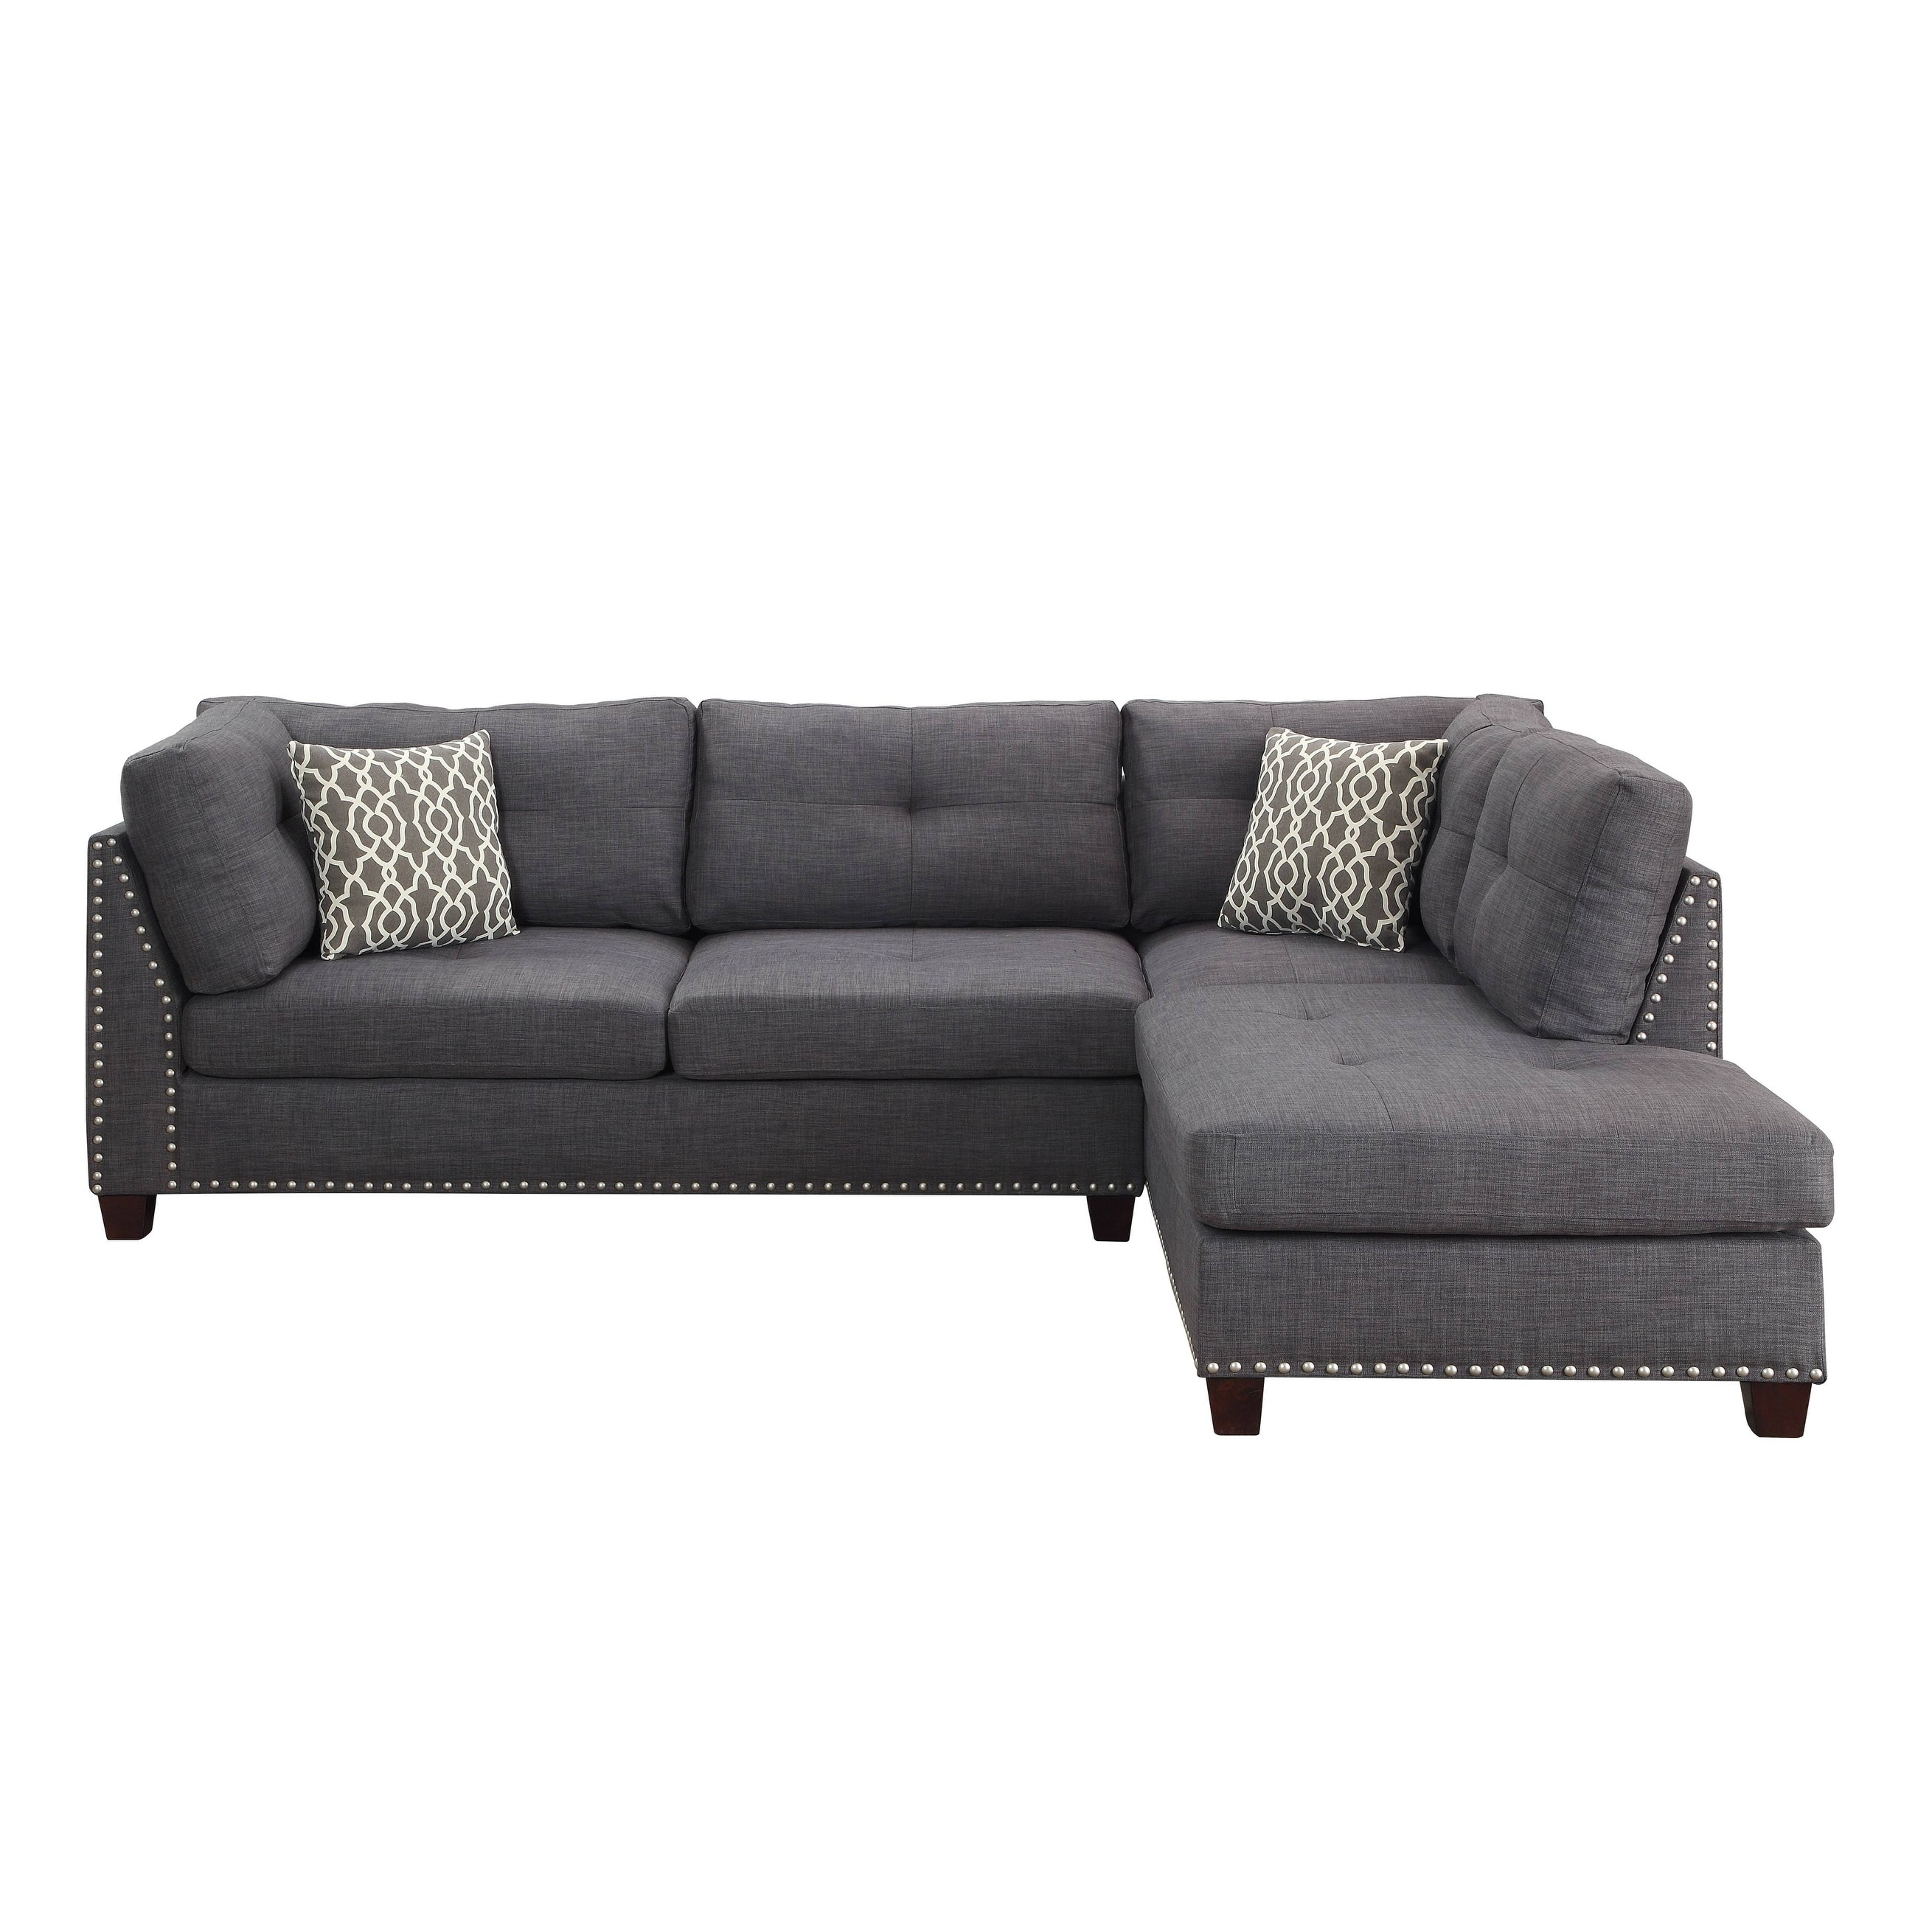 Shop Acme Laurissa L Shape Sectional Sofa With Ottoman In Charcoal